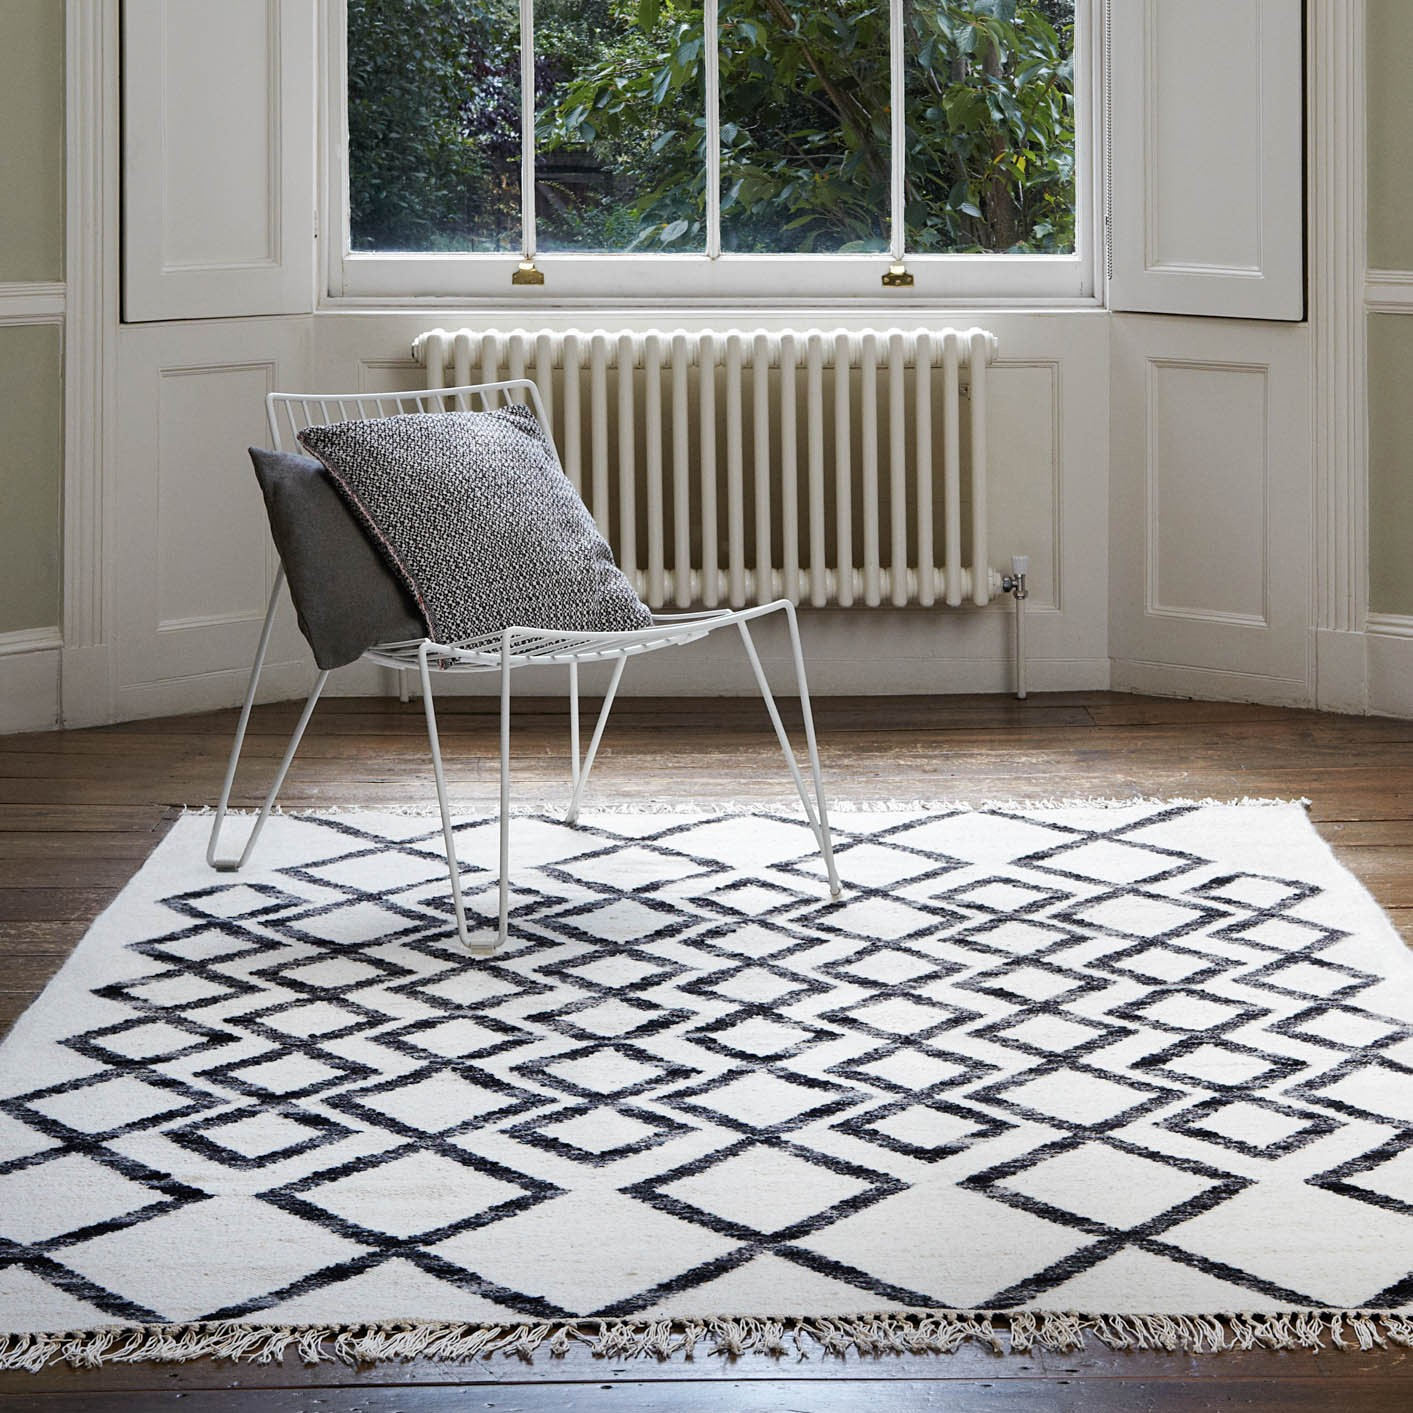 Modern Scandinavian Rug: How To Choose A Rug For Your Home